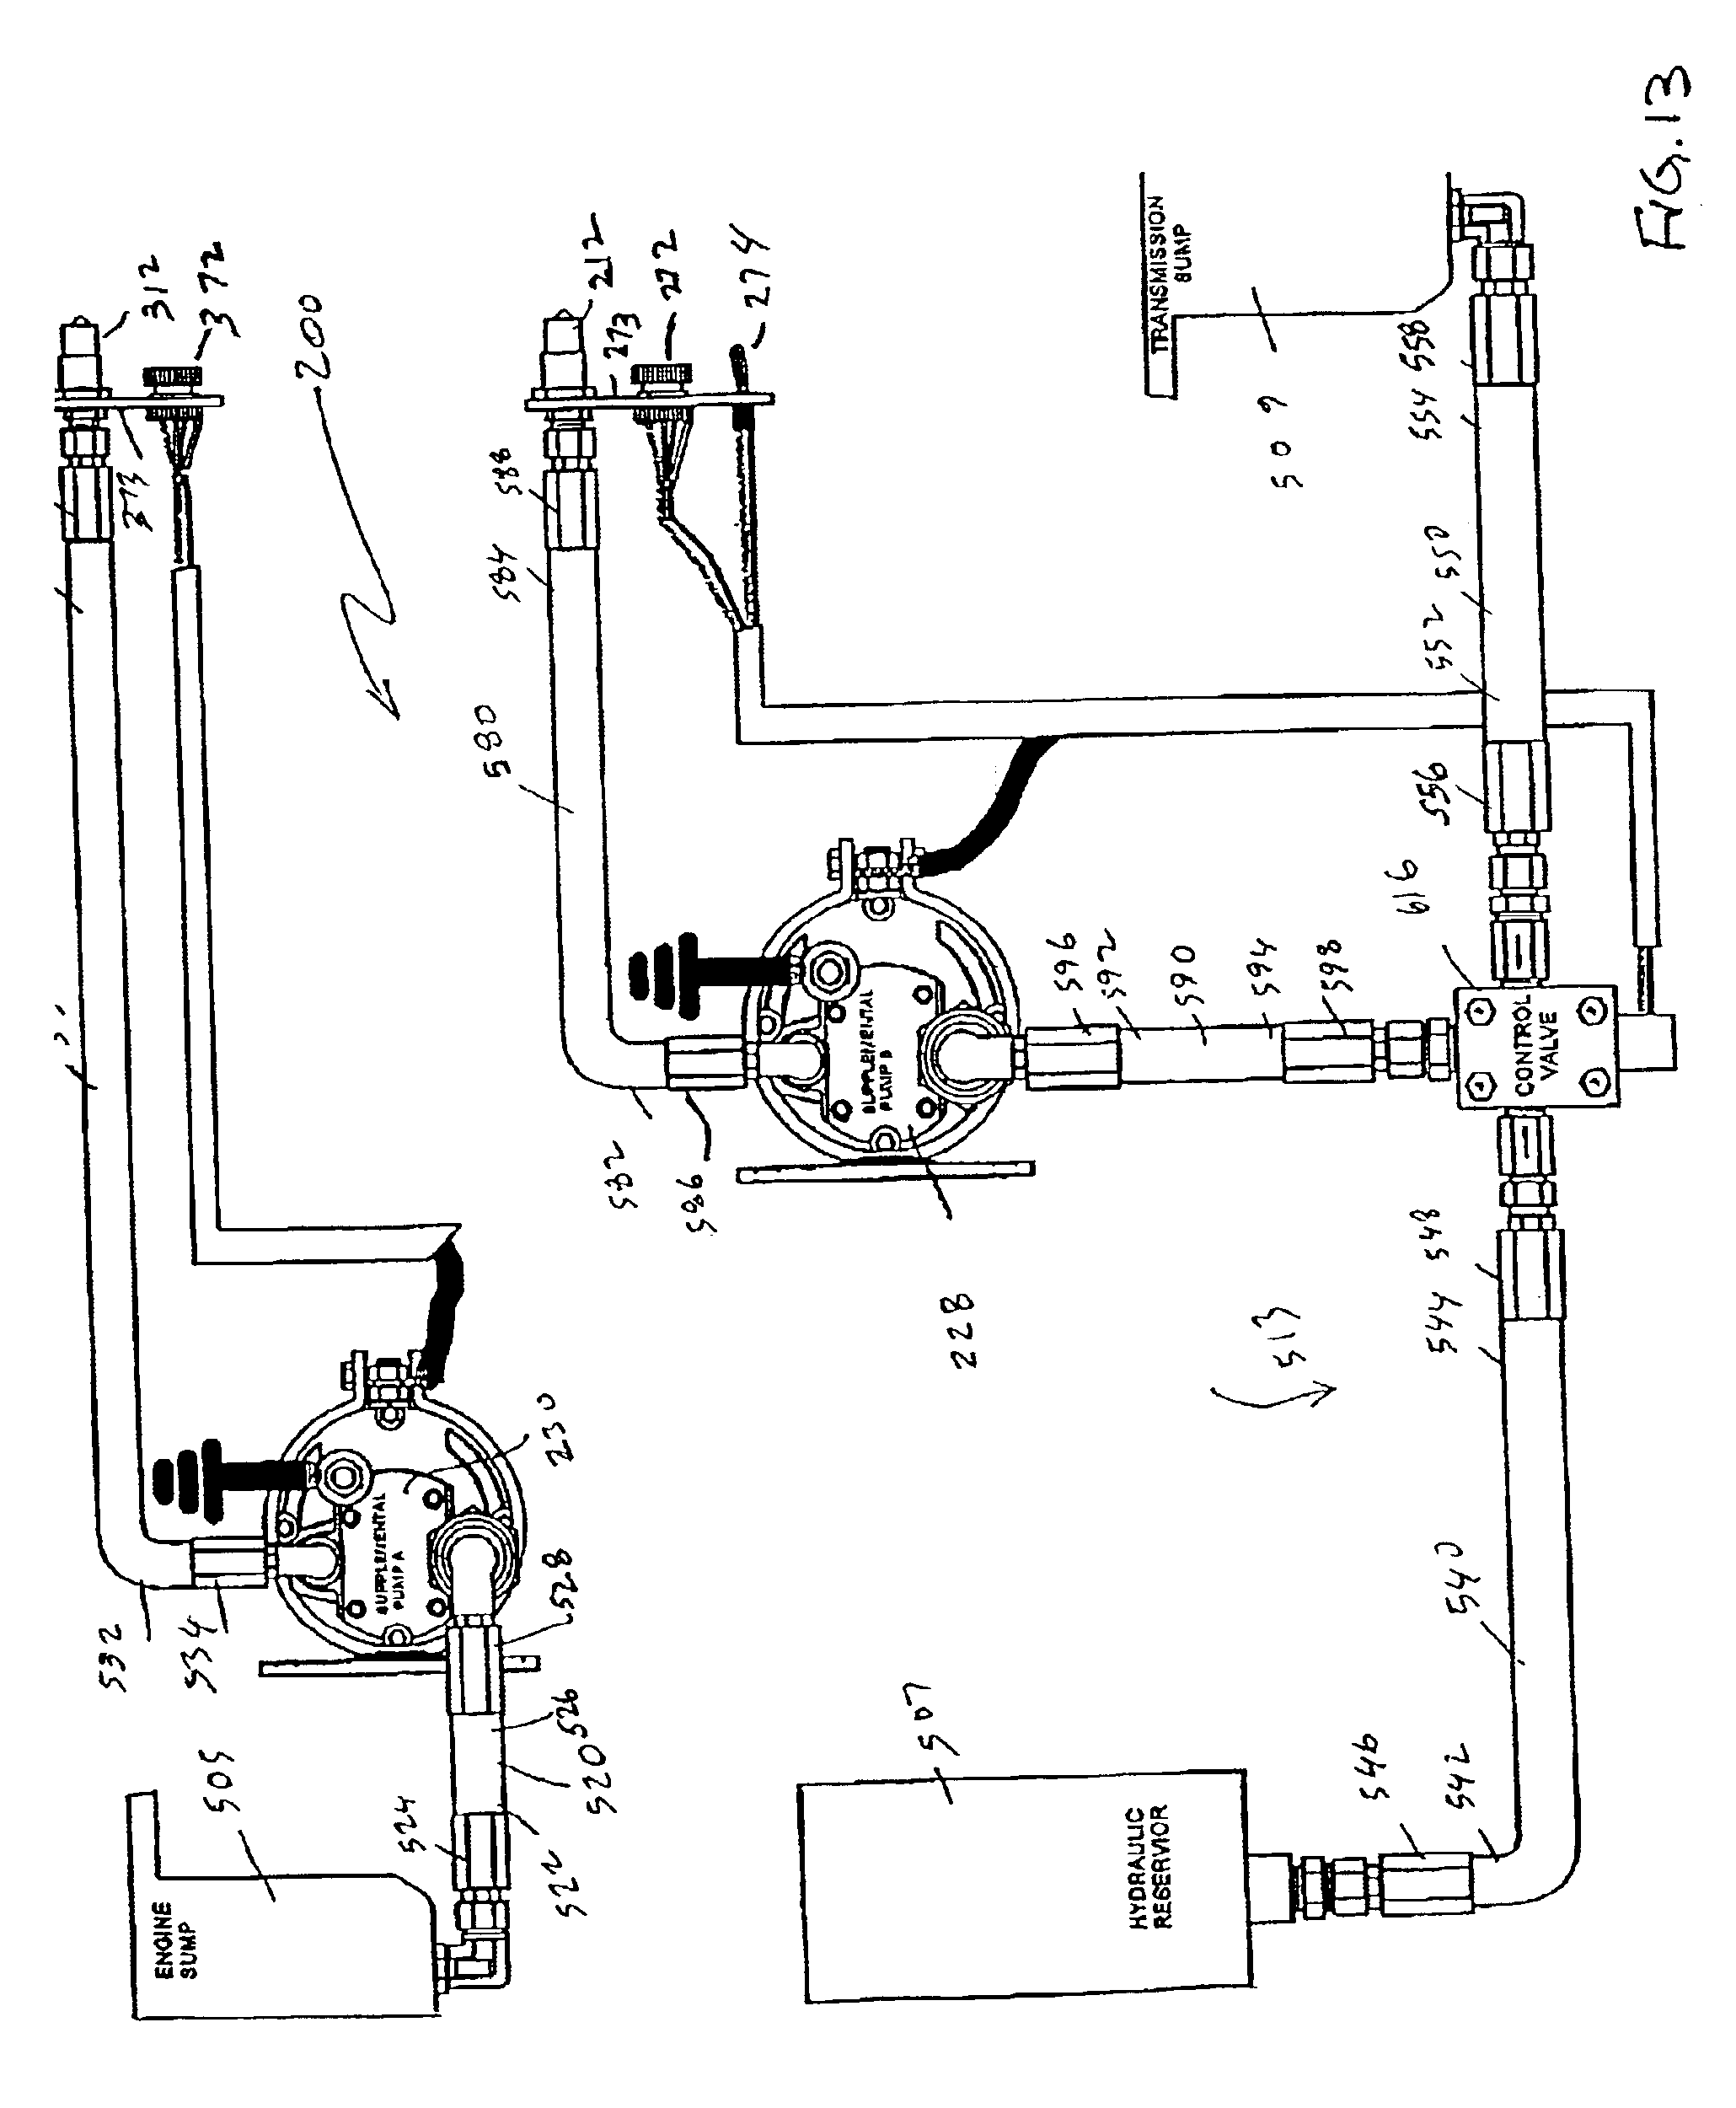 WRG-4274] Wagner Wiring Diagrams on